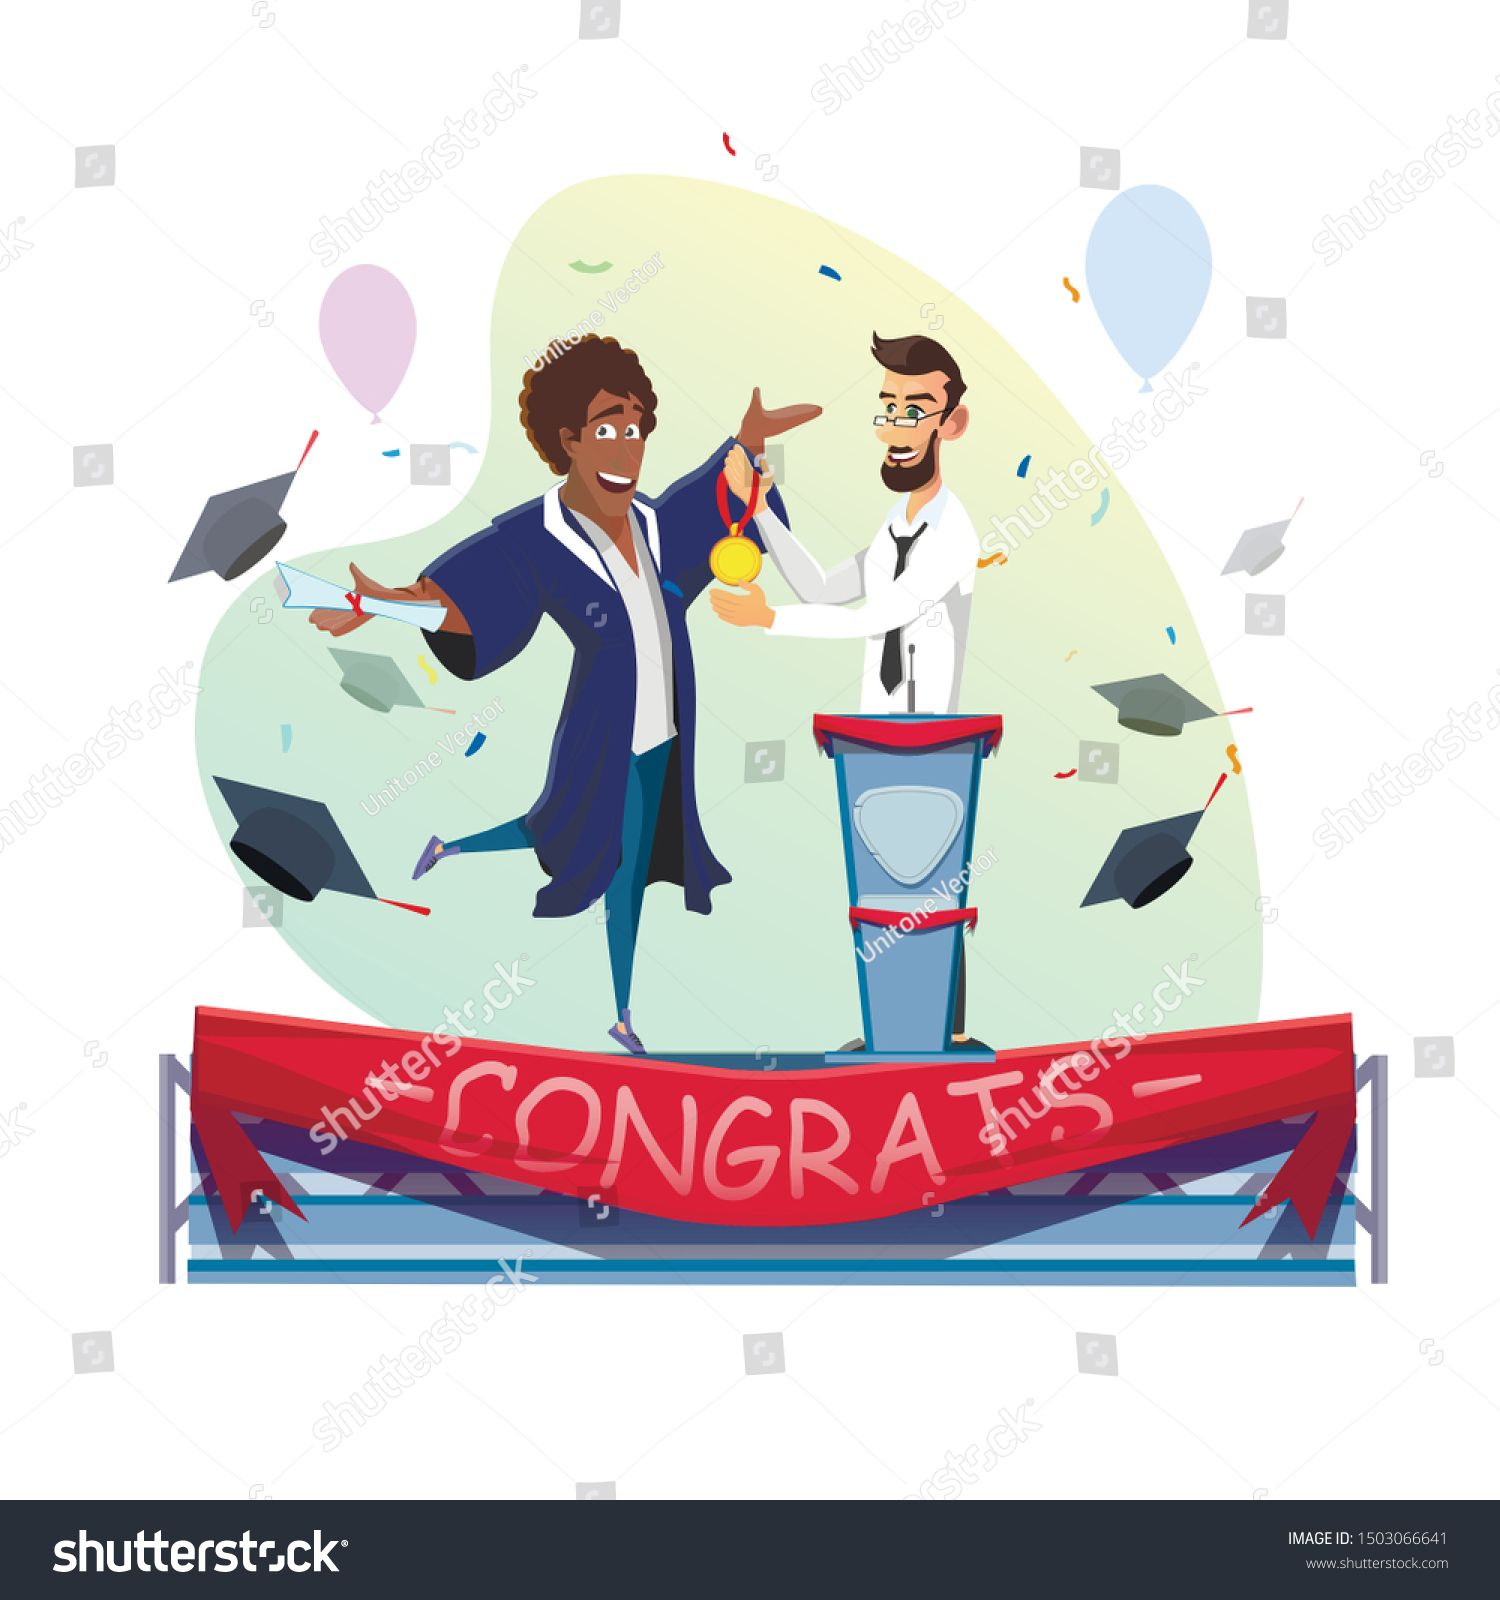 Happy AfroAmerican Student Receive Gold Medal and Degree Certificate from Professor or Rector Stage with Red Tape and Congrats Lettering Confetti Balloons Flying Hats Des...